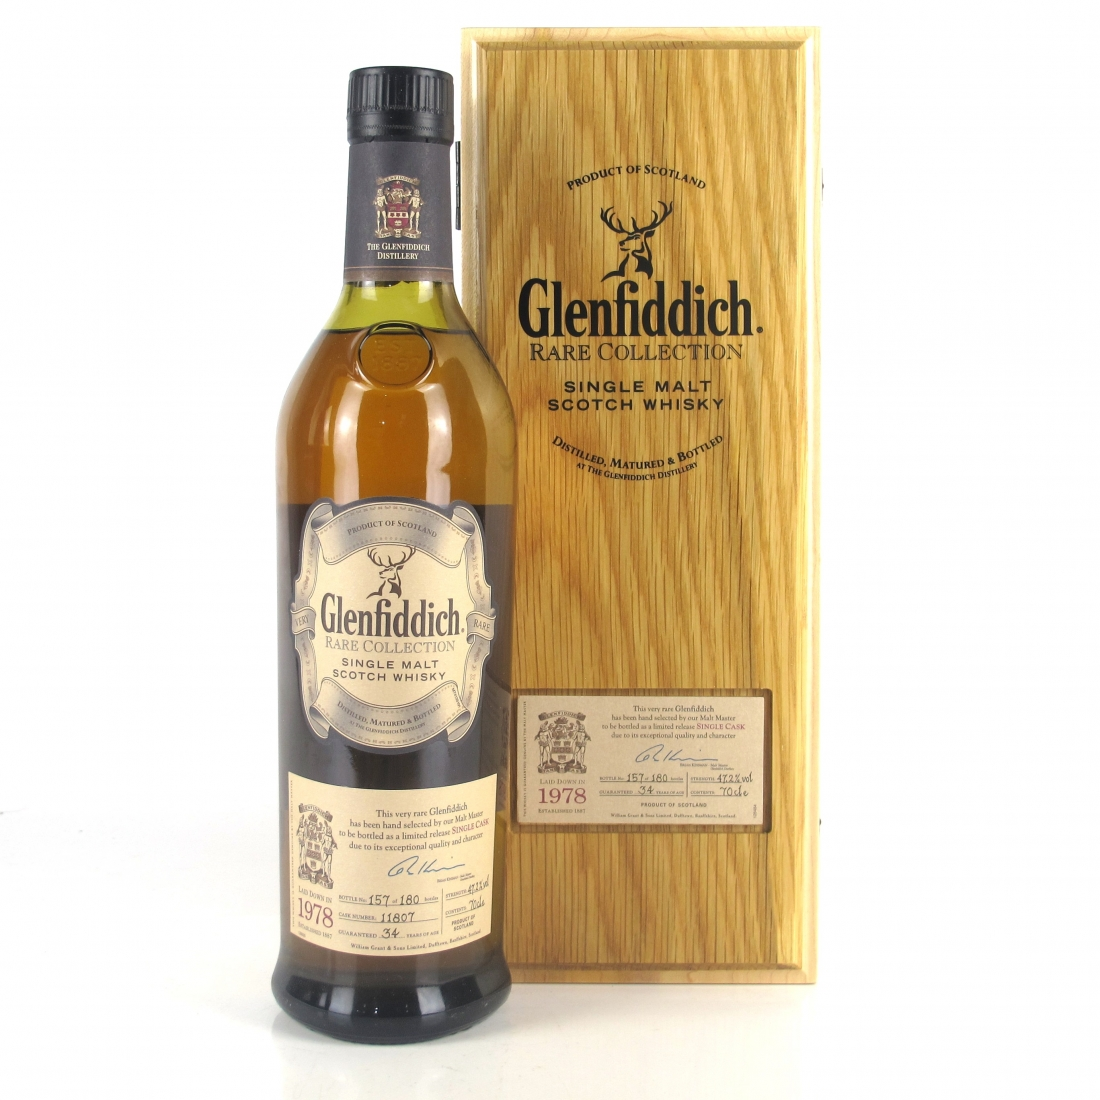 Glenfiddich 1978 Rare Collection 34 Year Old